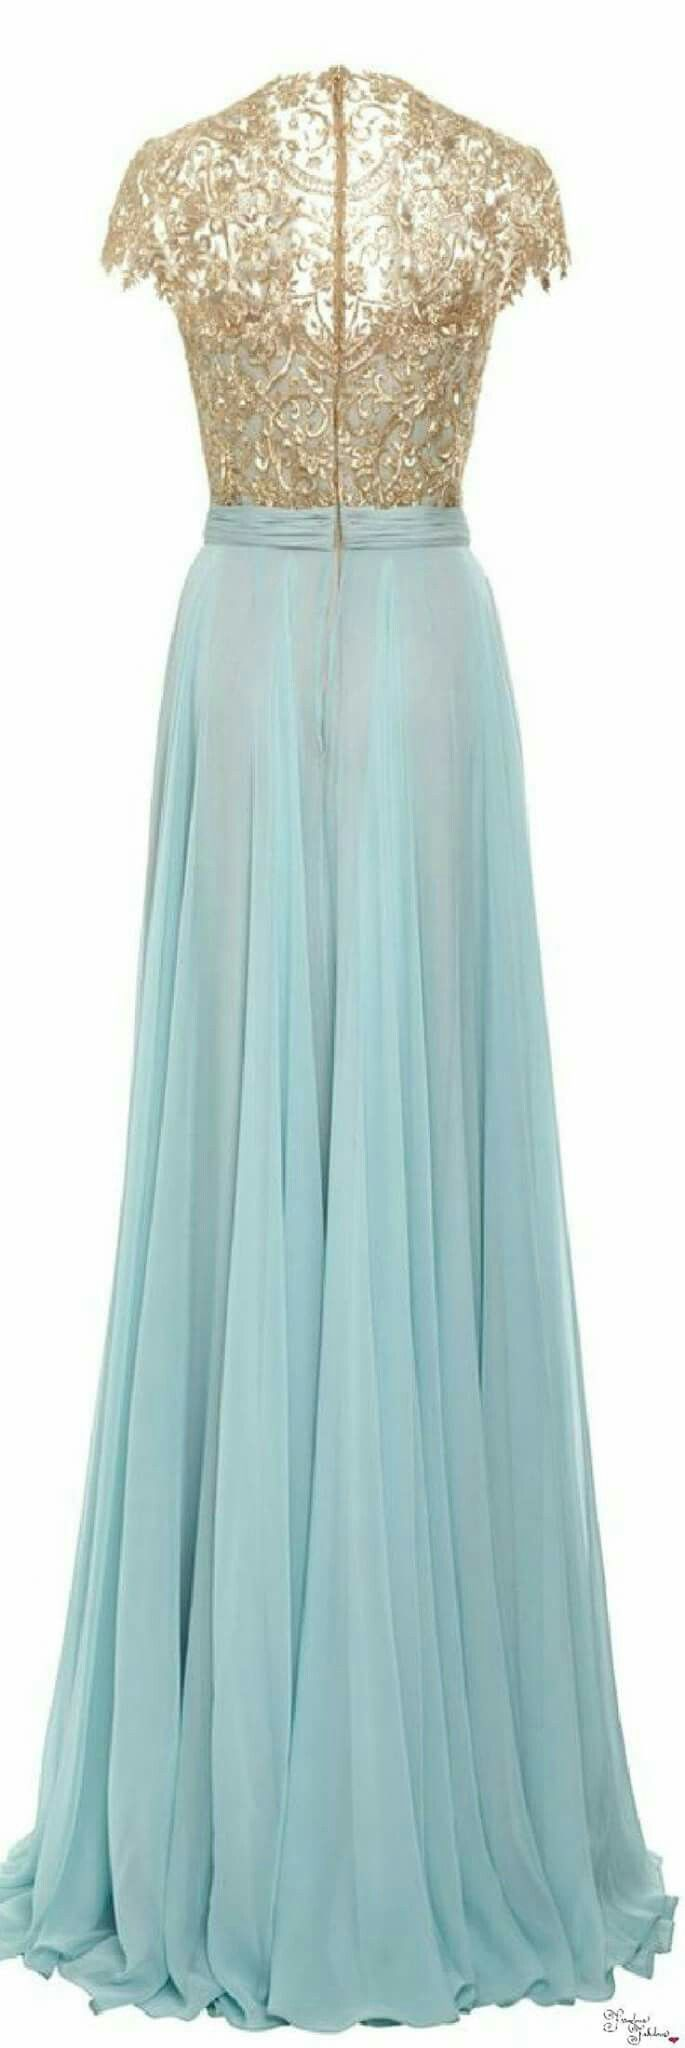 best Gowns images on Pinterest Wedding bridesmaid dresses